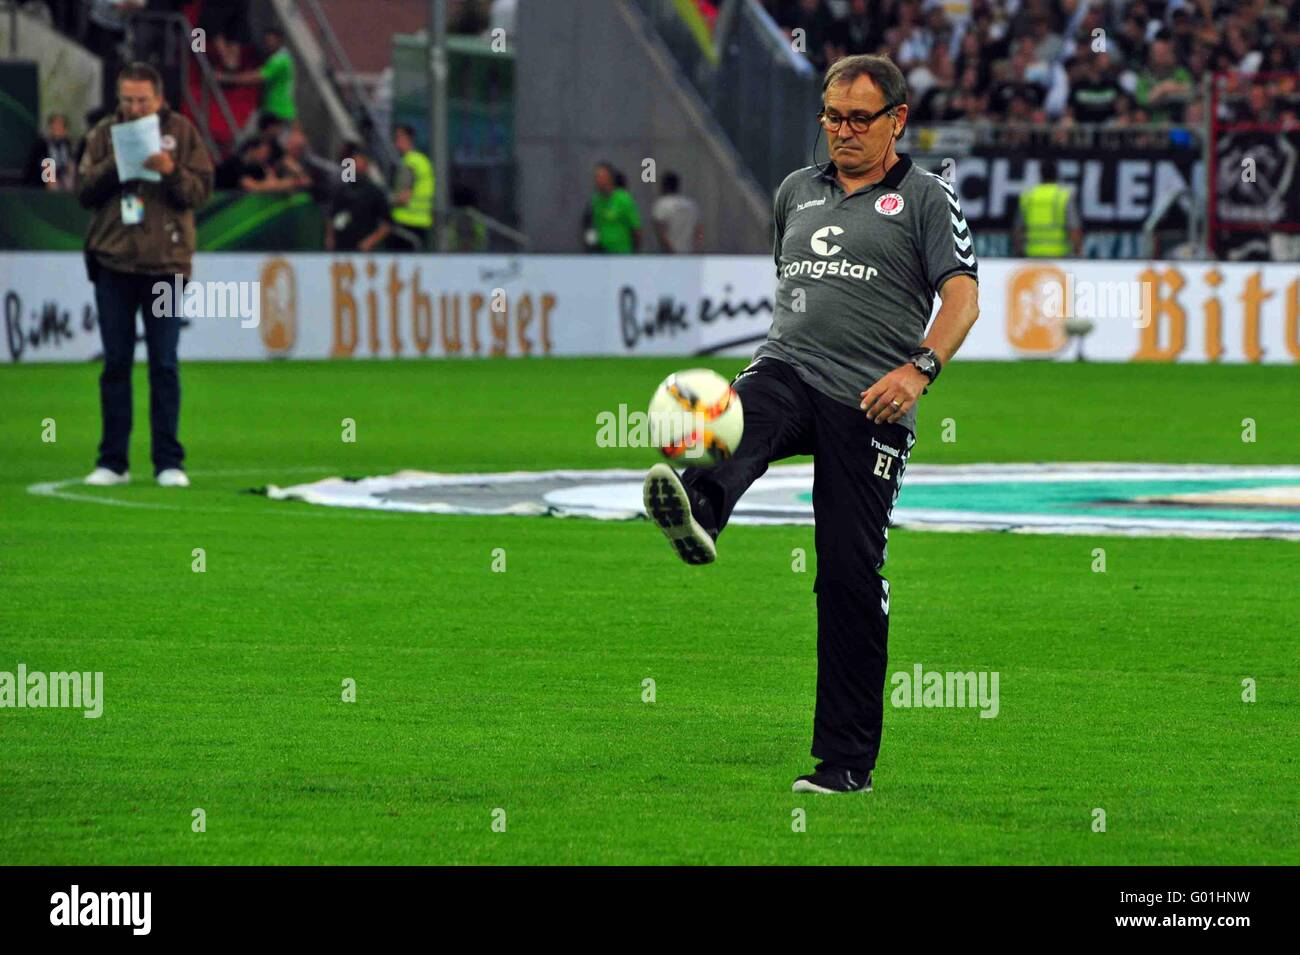 Ewald Lienen, Trainer FC St. Pauli, Hamburg, Deutschland. Editorial use only. - Stock Image